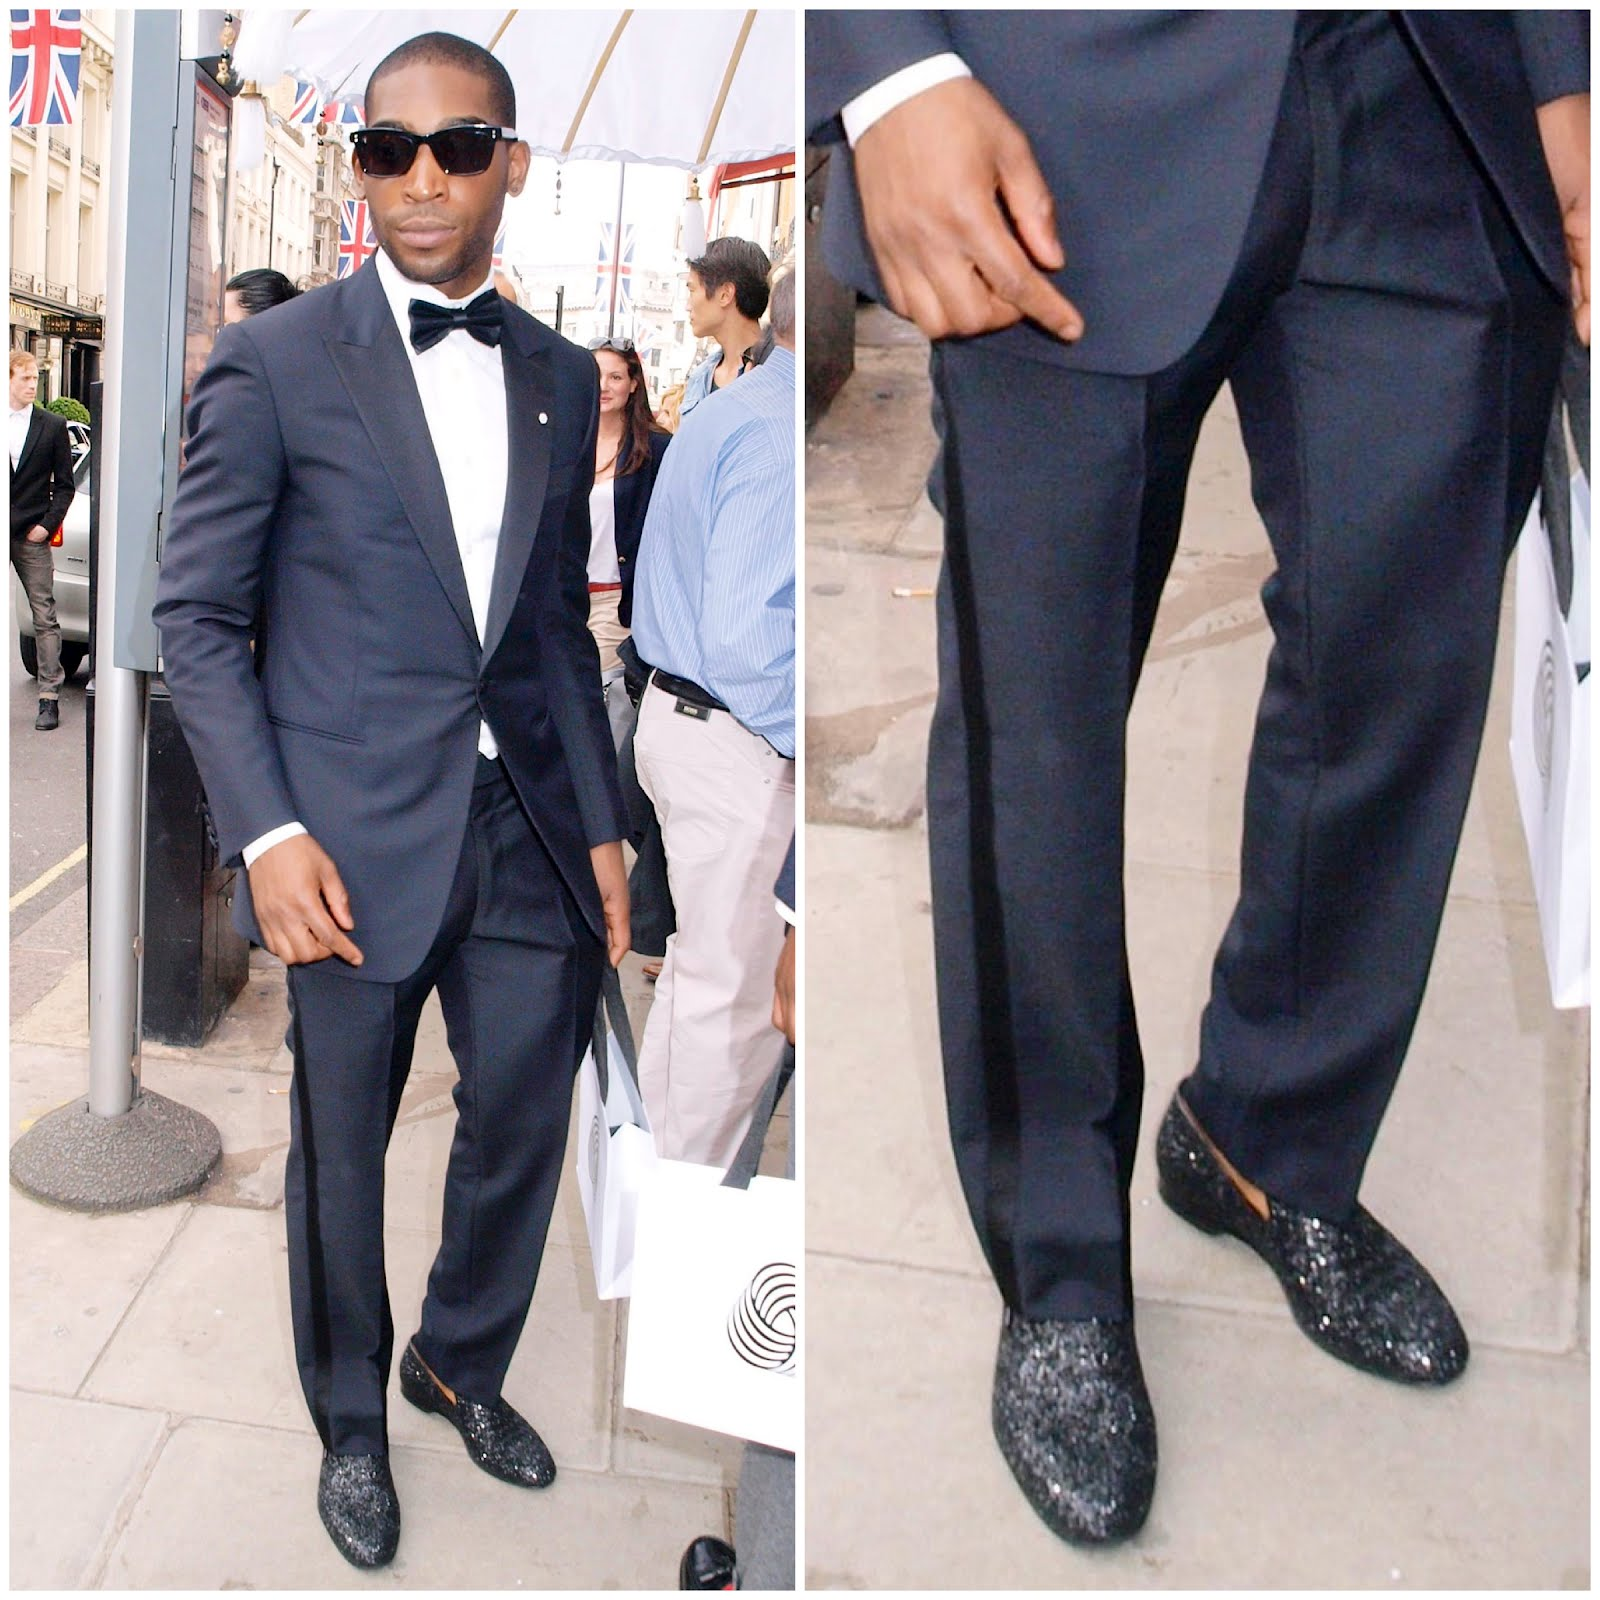 00O00 London Menswear Blog Tinie Tempah in Jimmy Choo glitter slippers. LONDON COLLECTIONS: MEN will take place for the second time from January 7 to January 9 2013. #LondonCollections